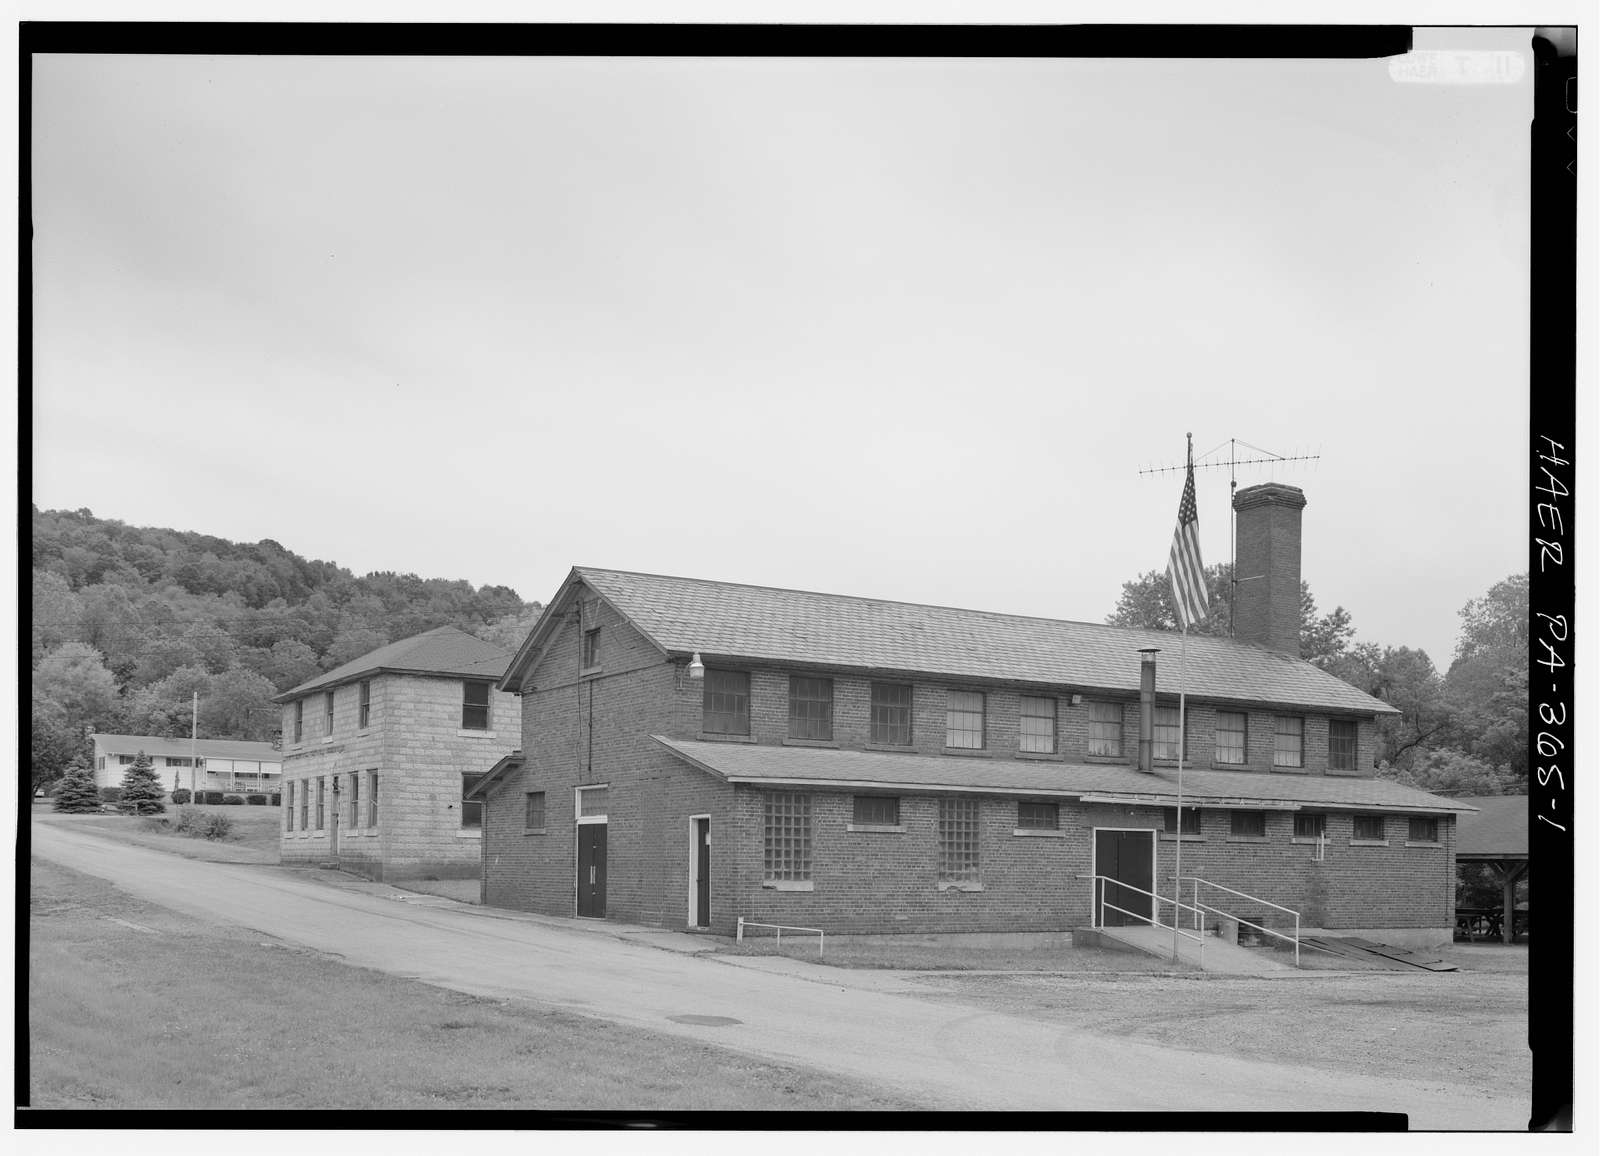 Colonial Mines Bathhouse, Smock, Fayette County, PA